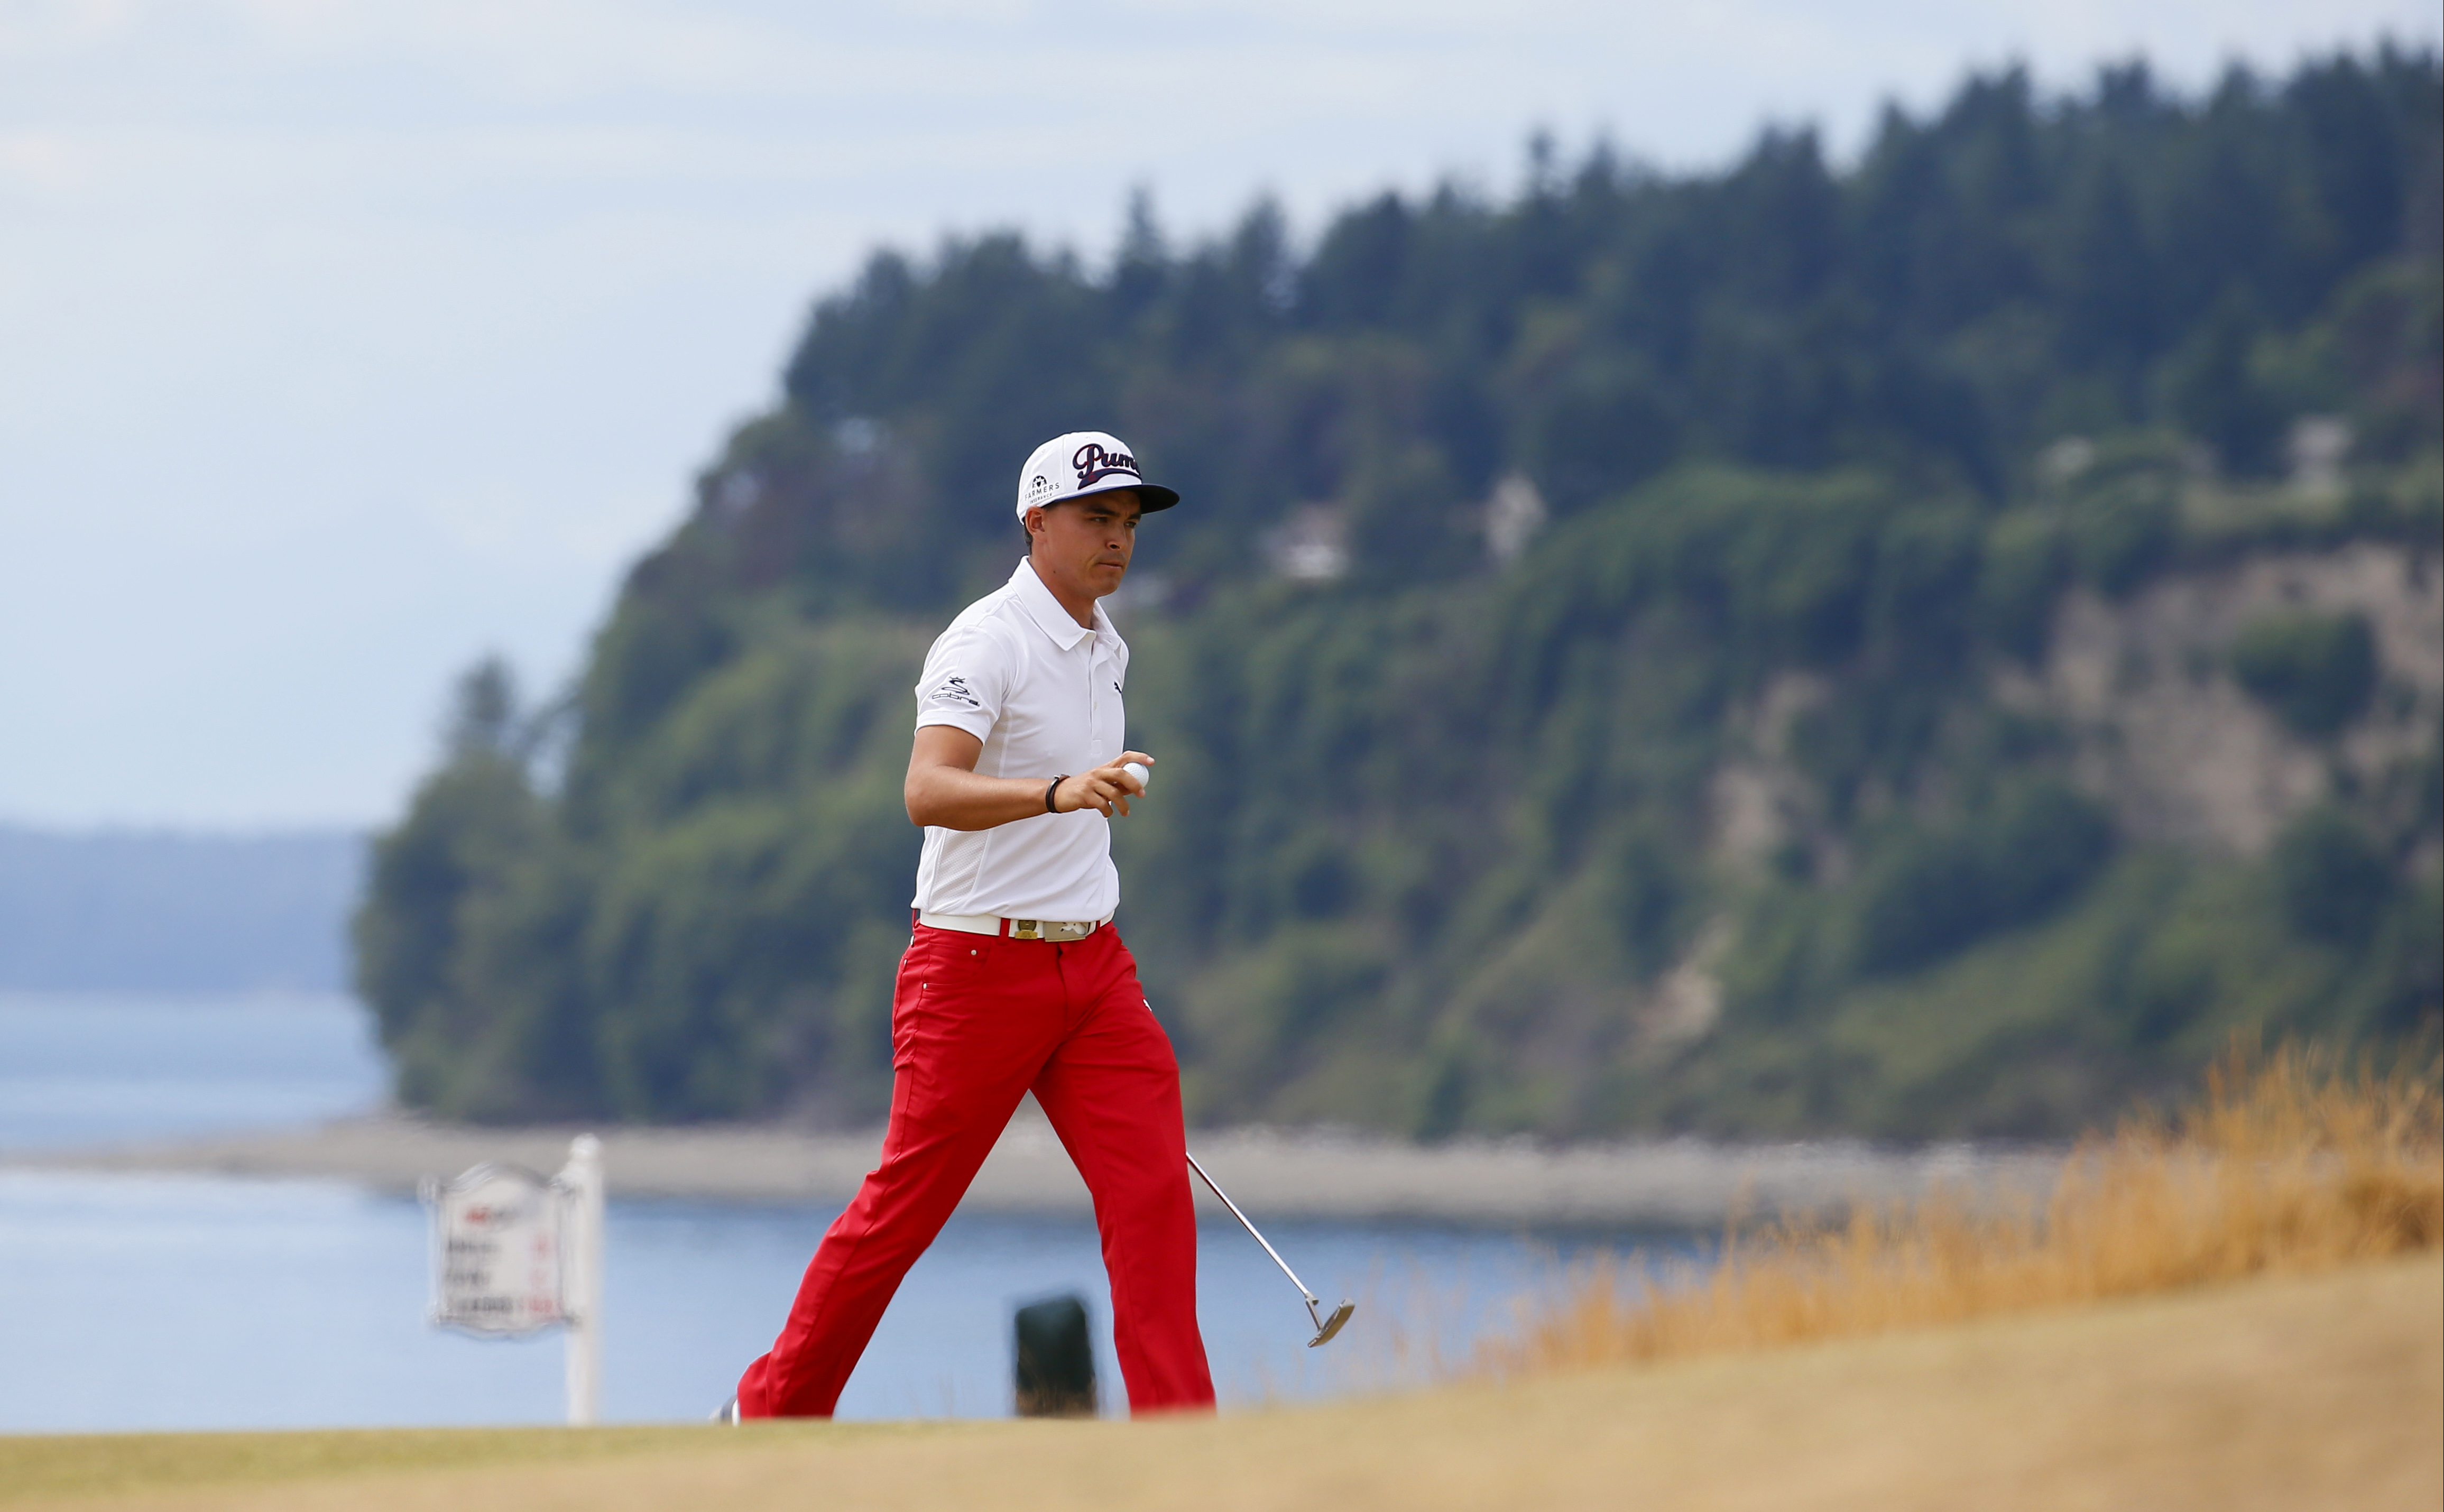 Rickie Fowler reacts to his putt on the third hole during the first round of the U.S. Open golf tournament at Chambers Bay on Thursday, June 18, 2015 in University Place, Wash. (AP Photo/Matt York)